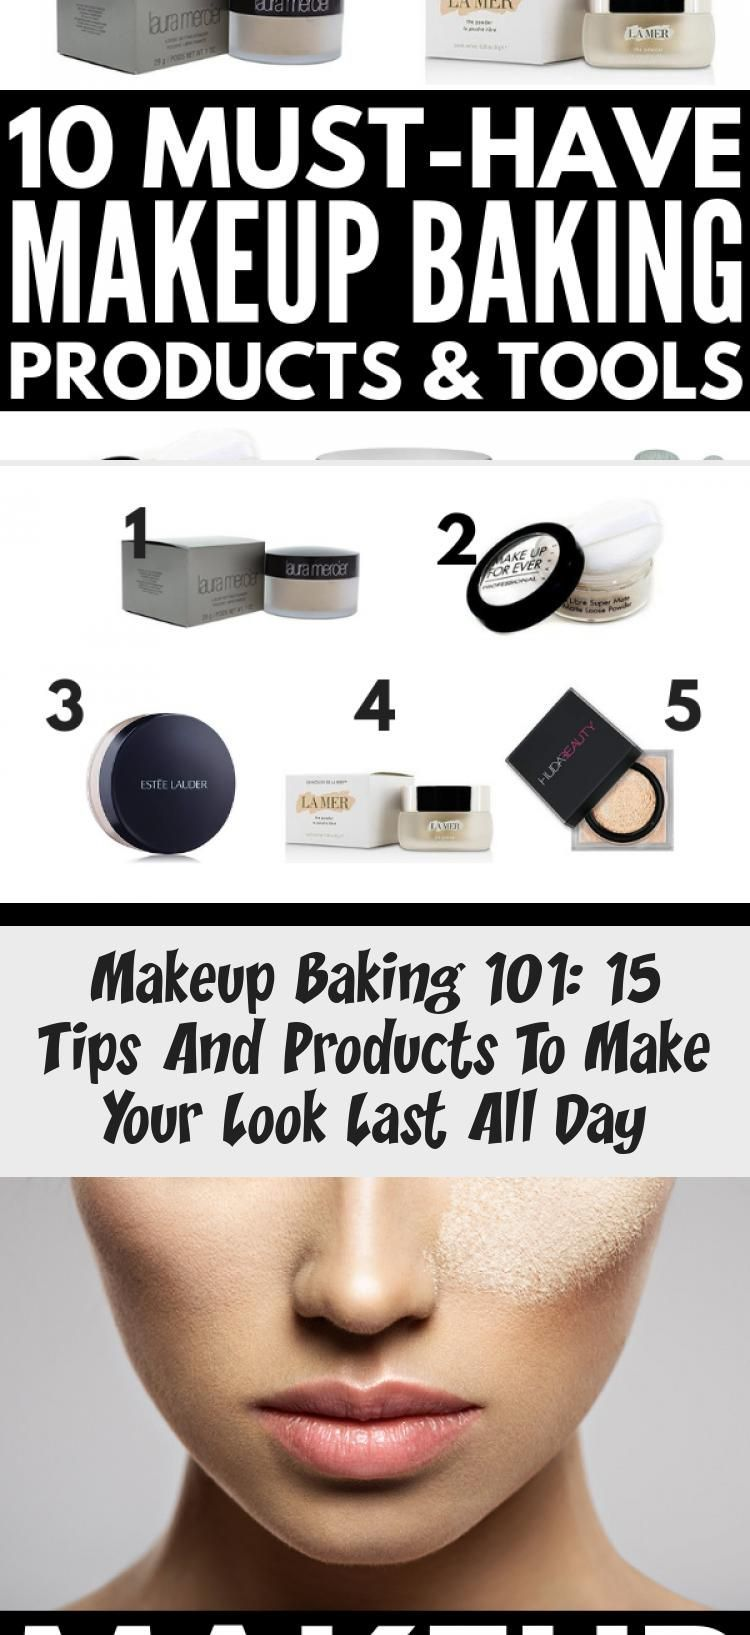 Makeup Baking 101 15 Tips And Products To Make Your Look